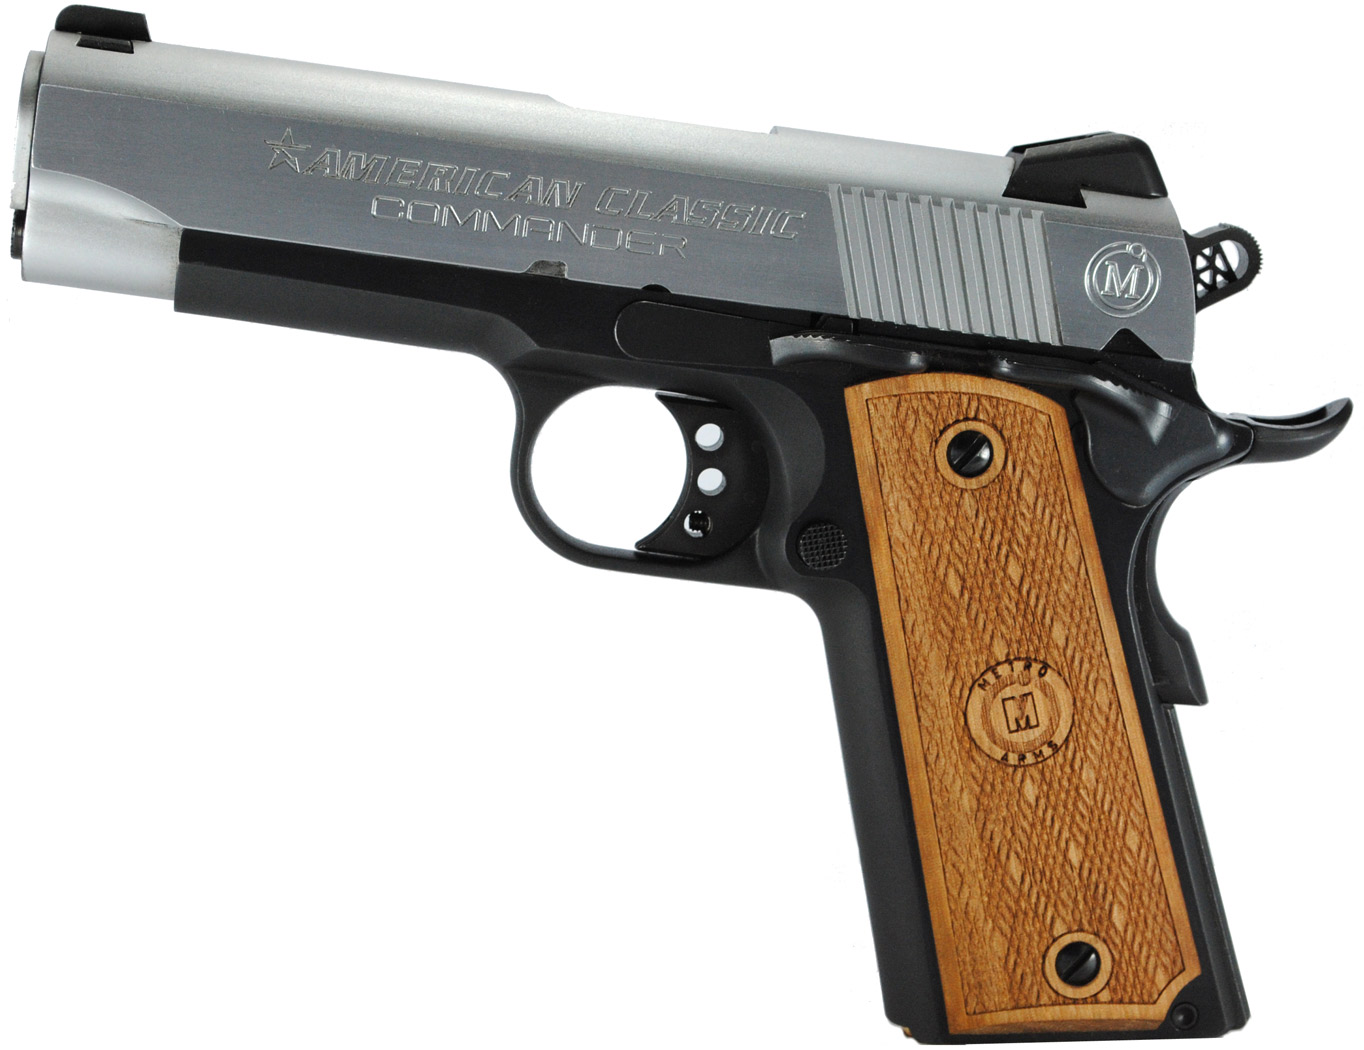 Picture shows a silve and black duotone Commander-sized 1911 handgun with wood checkered grips.